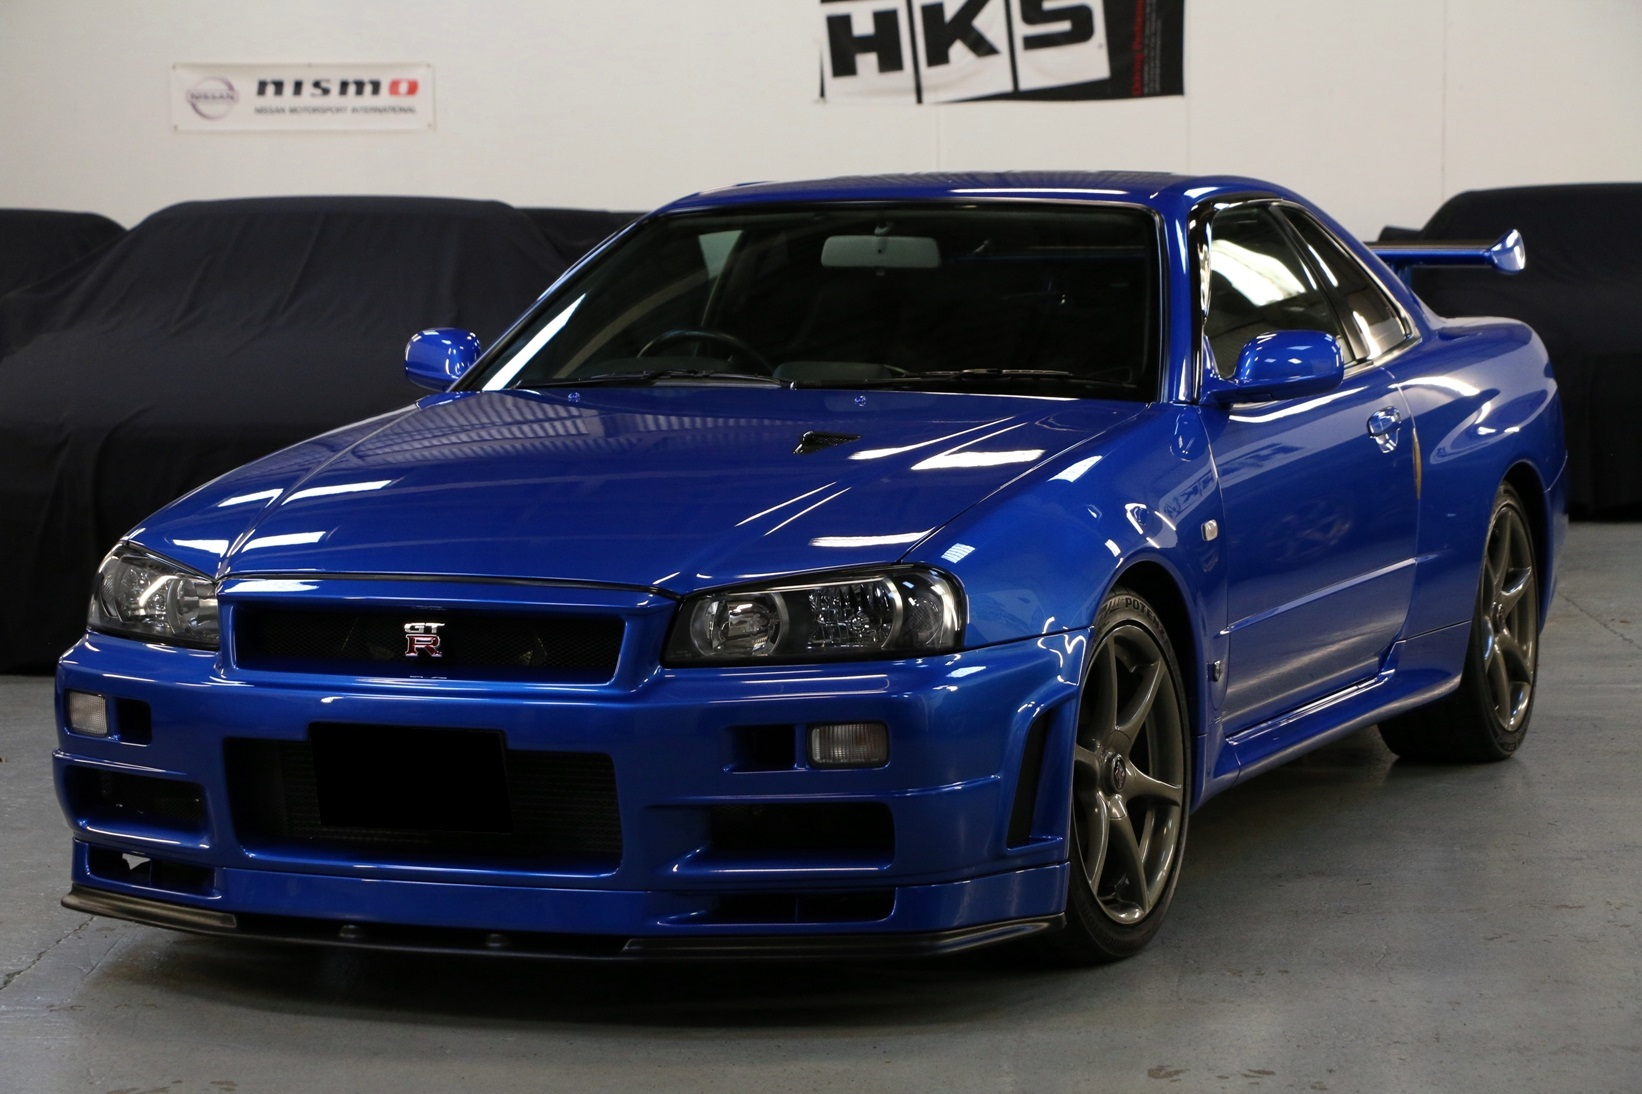 buying a nissan skyline r34 gt r ultimate guide garage dreamsthese two cars were designed to be the finale to the r34 gt r range they were released in february 2002 and were named after the famous german nürburgring